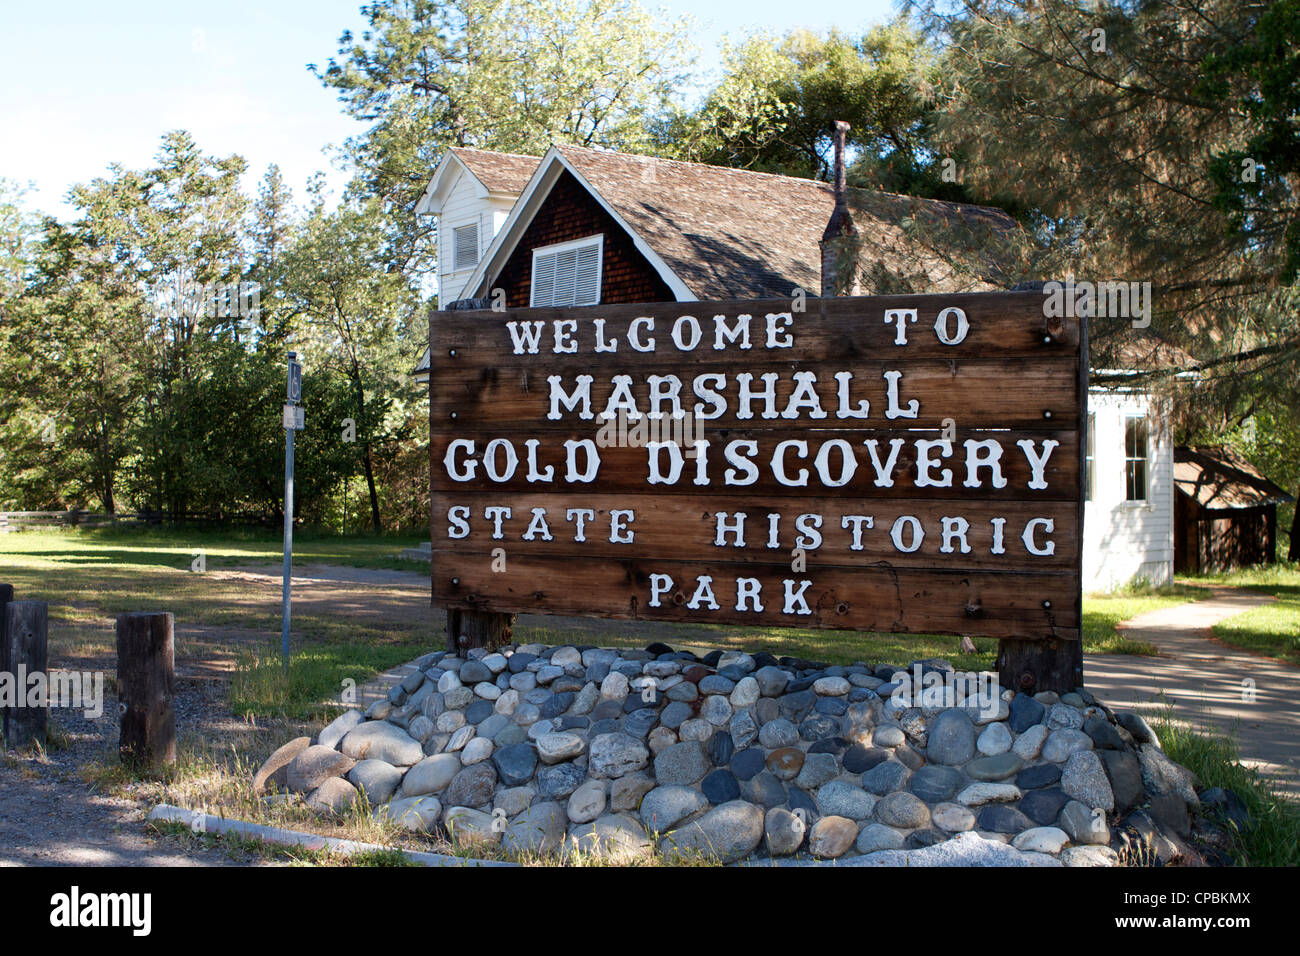 Marshall Gold Discovery state historic park sign Coloma California USA - Stock Image